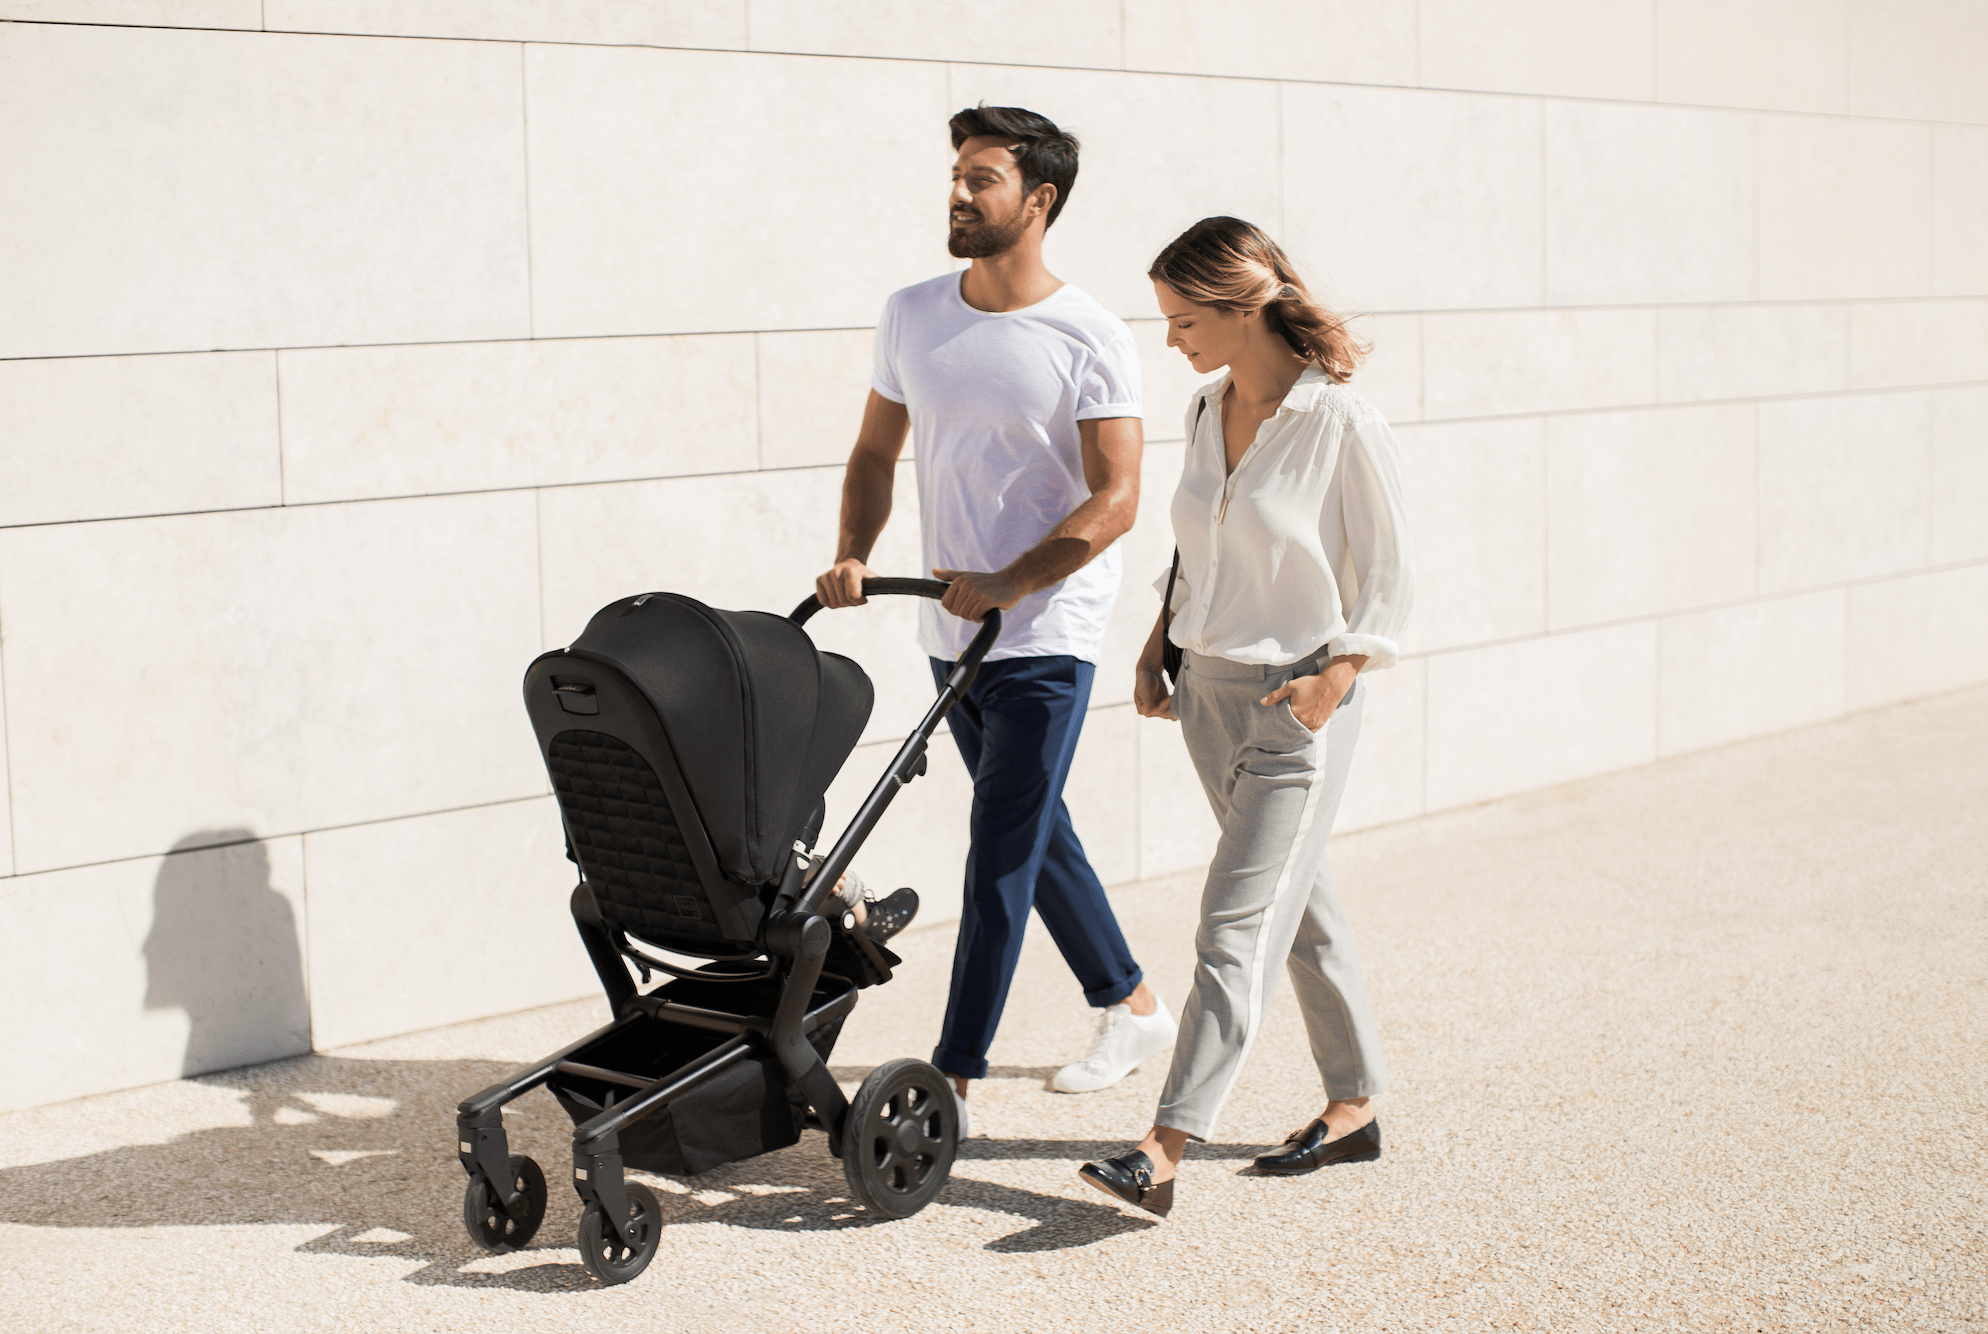 Joolz Kinderwagen Für Zwei Kinder This New Compact Stroller From Joolz Is A Sublime Mix Of